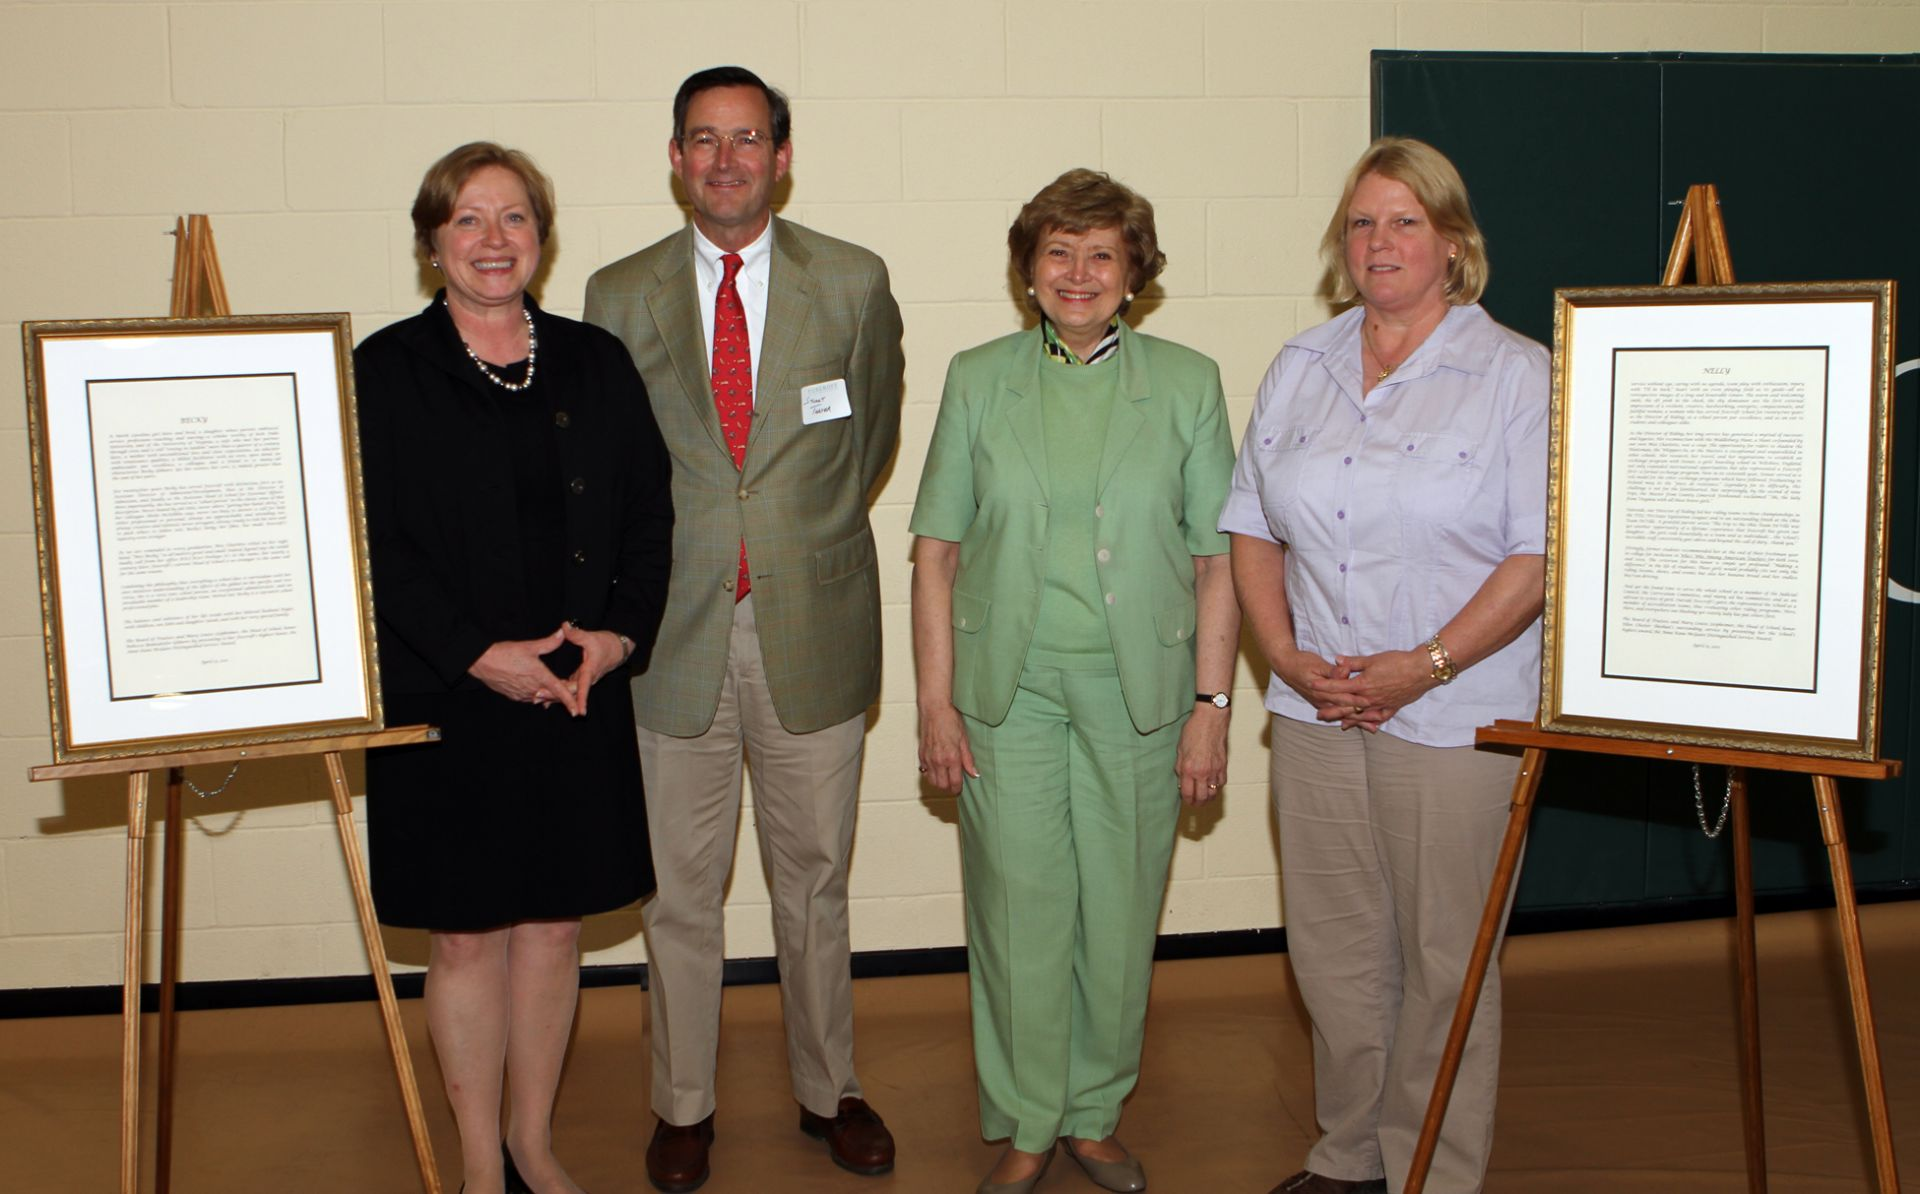 2011: Becky Gilmore (left) and Nelly Sheehan (right) pose with Board of Trustees President Stuartt Thayer and Head of School Mary Louise Leipheimer.